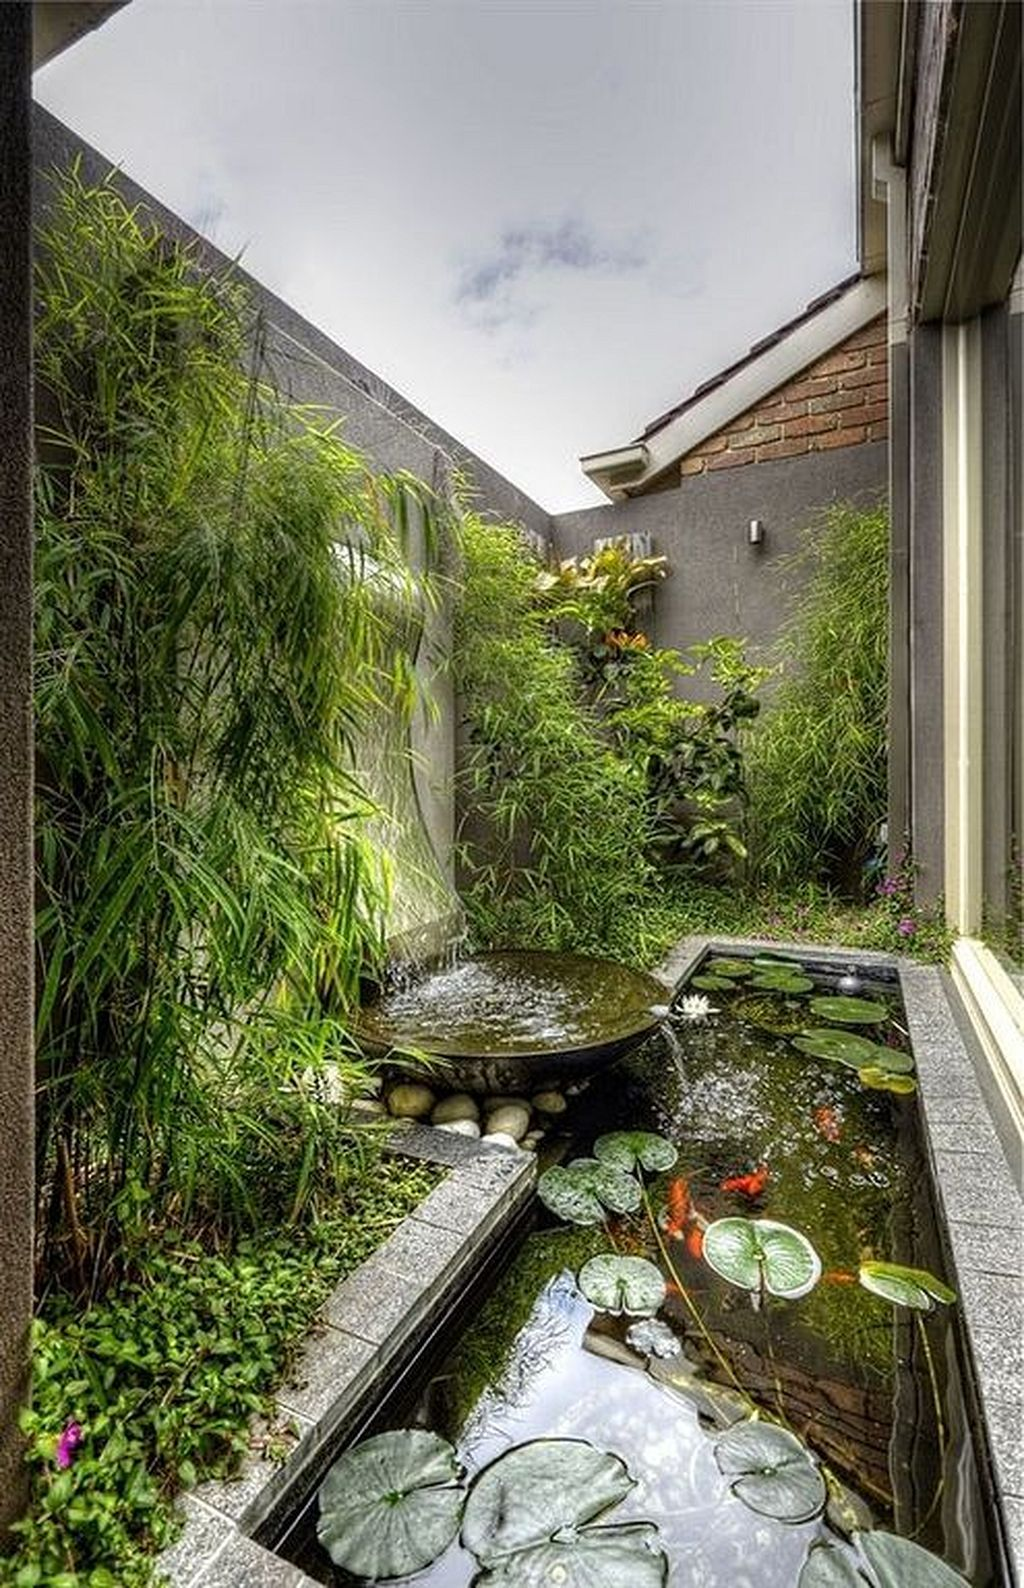 20+ Awesome Backyard Aquarium Ideas Will Blow Your Mind is part of Zen garden design - Aquariums surely offer a lively and intriguing touch to each interior or exterior  It's always wisest to move them to an interior aquarium once the weather conditions aren't appropriate  Natural aquarium can be extremely beautiful as soon as the plants start to grow well in it  The glass aquarium gi